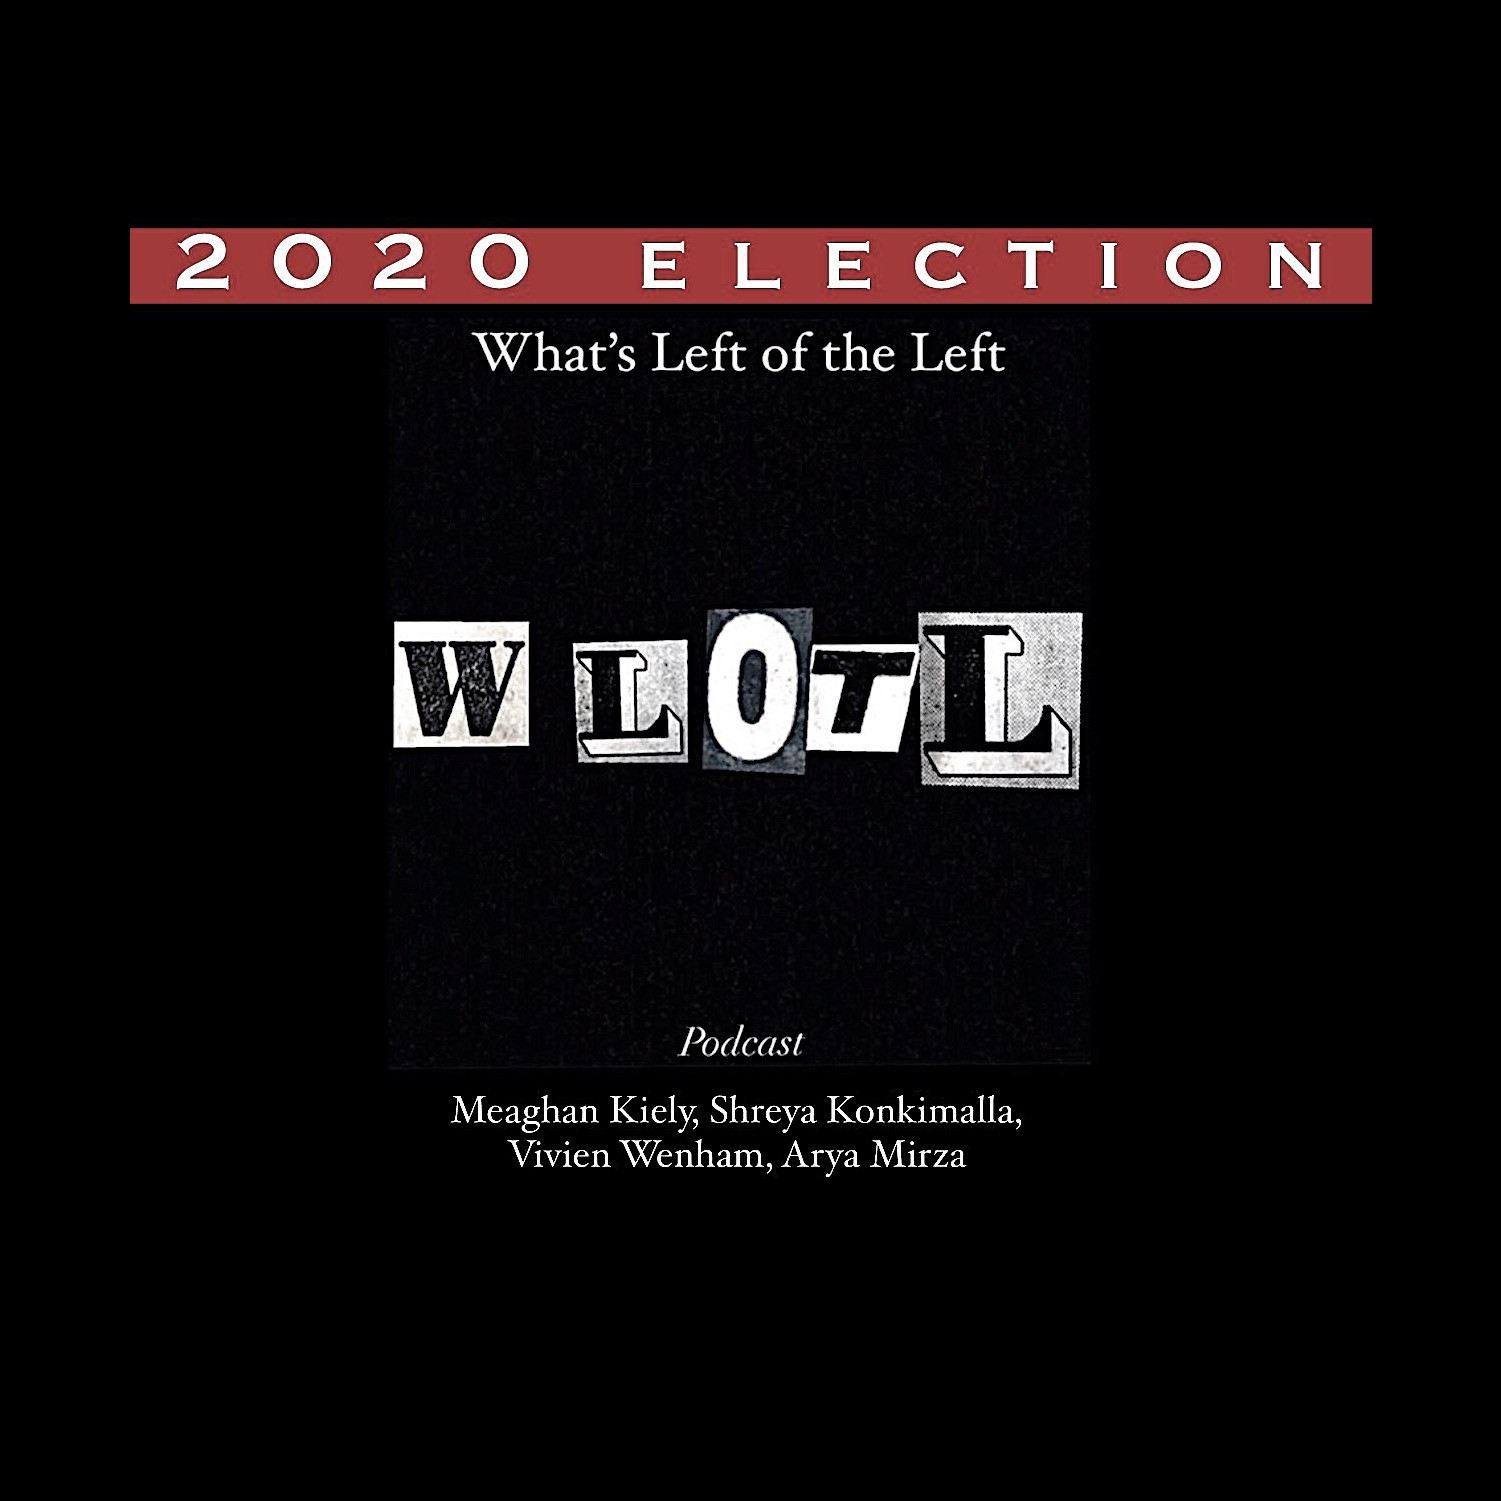 EP 7: 2020 Election